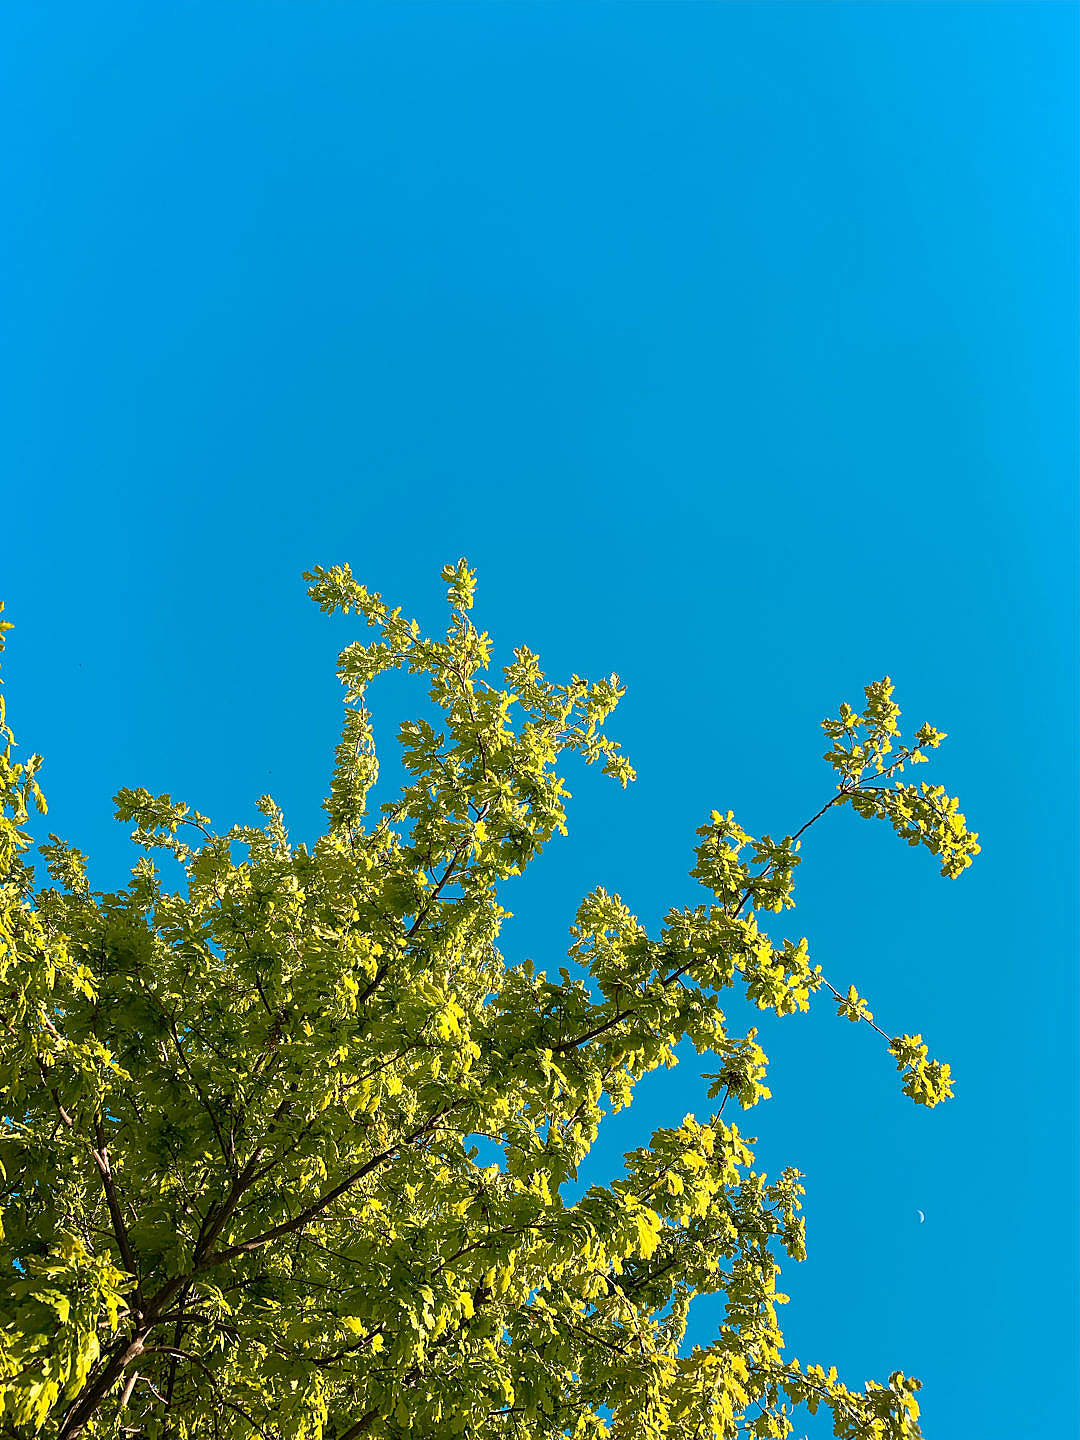 Download Green Leaves Against Bright Sky FREE Stock Photo